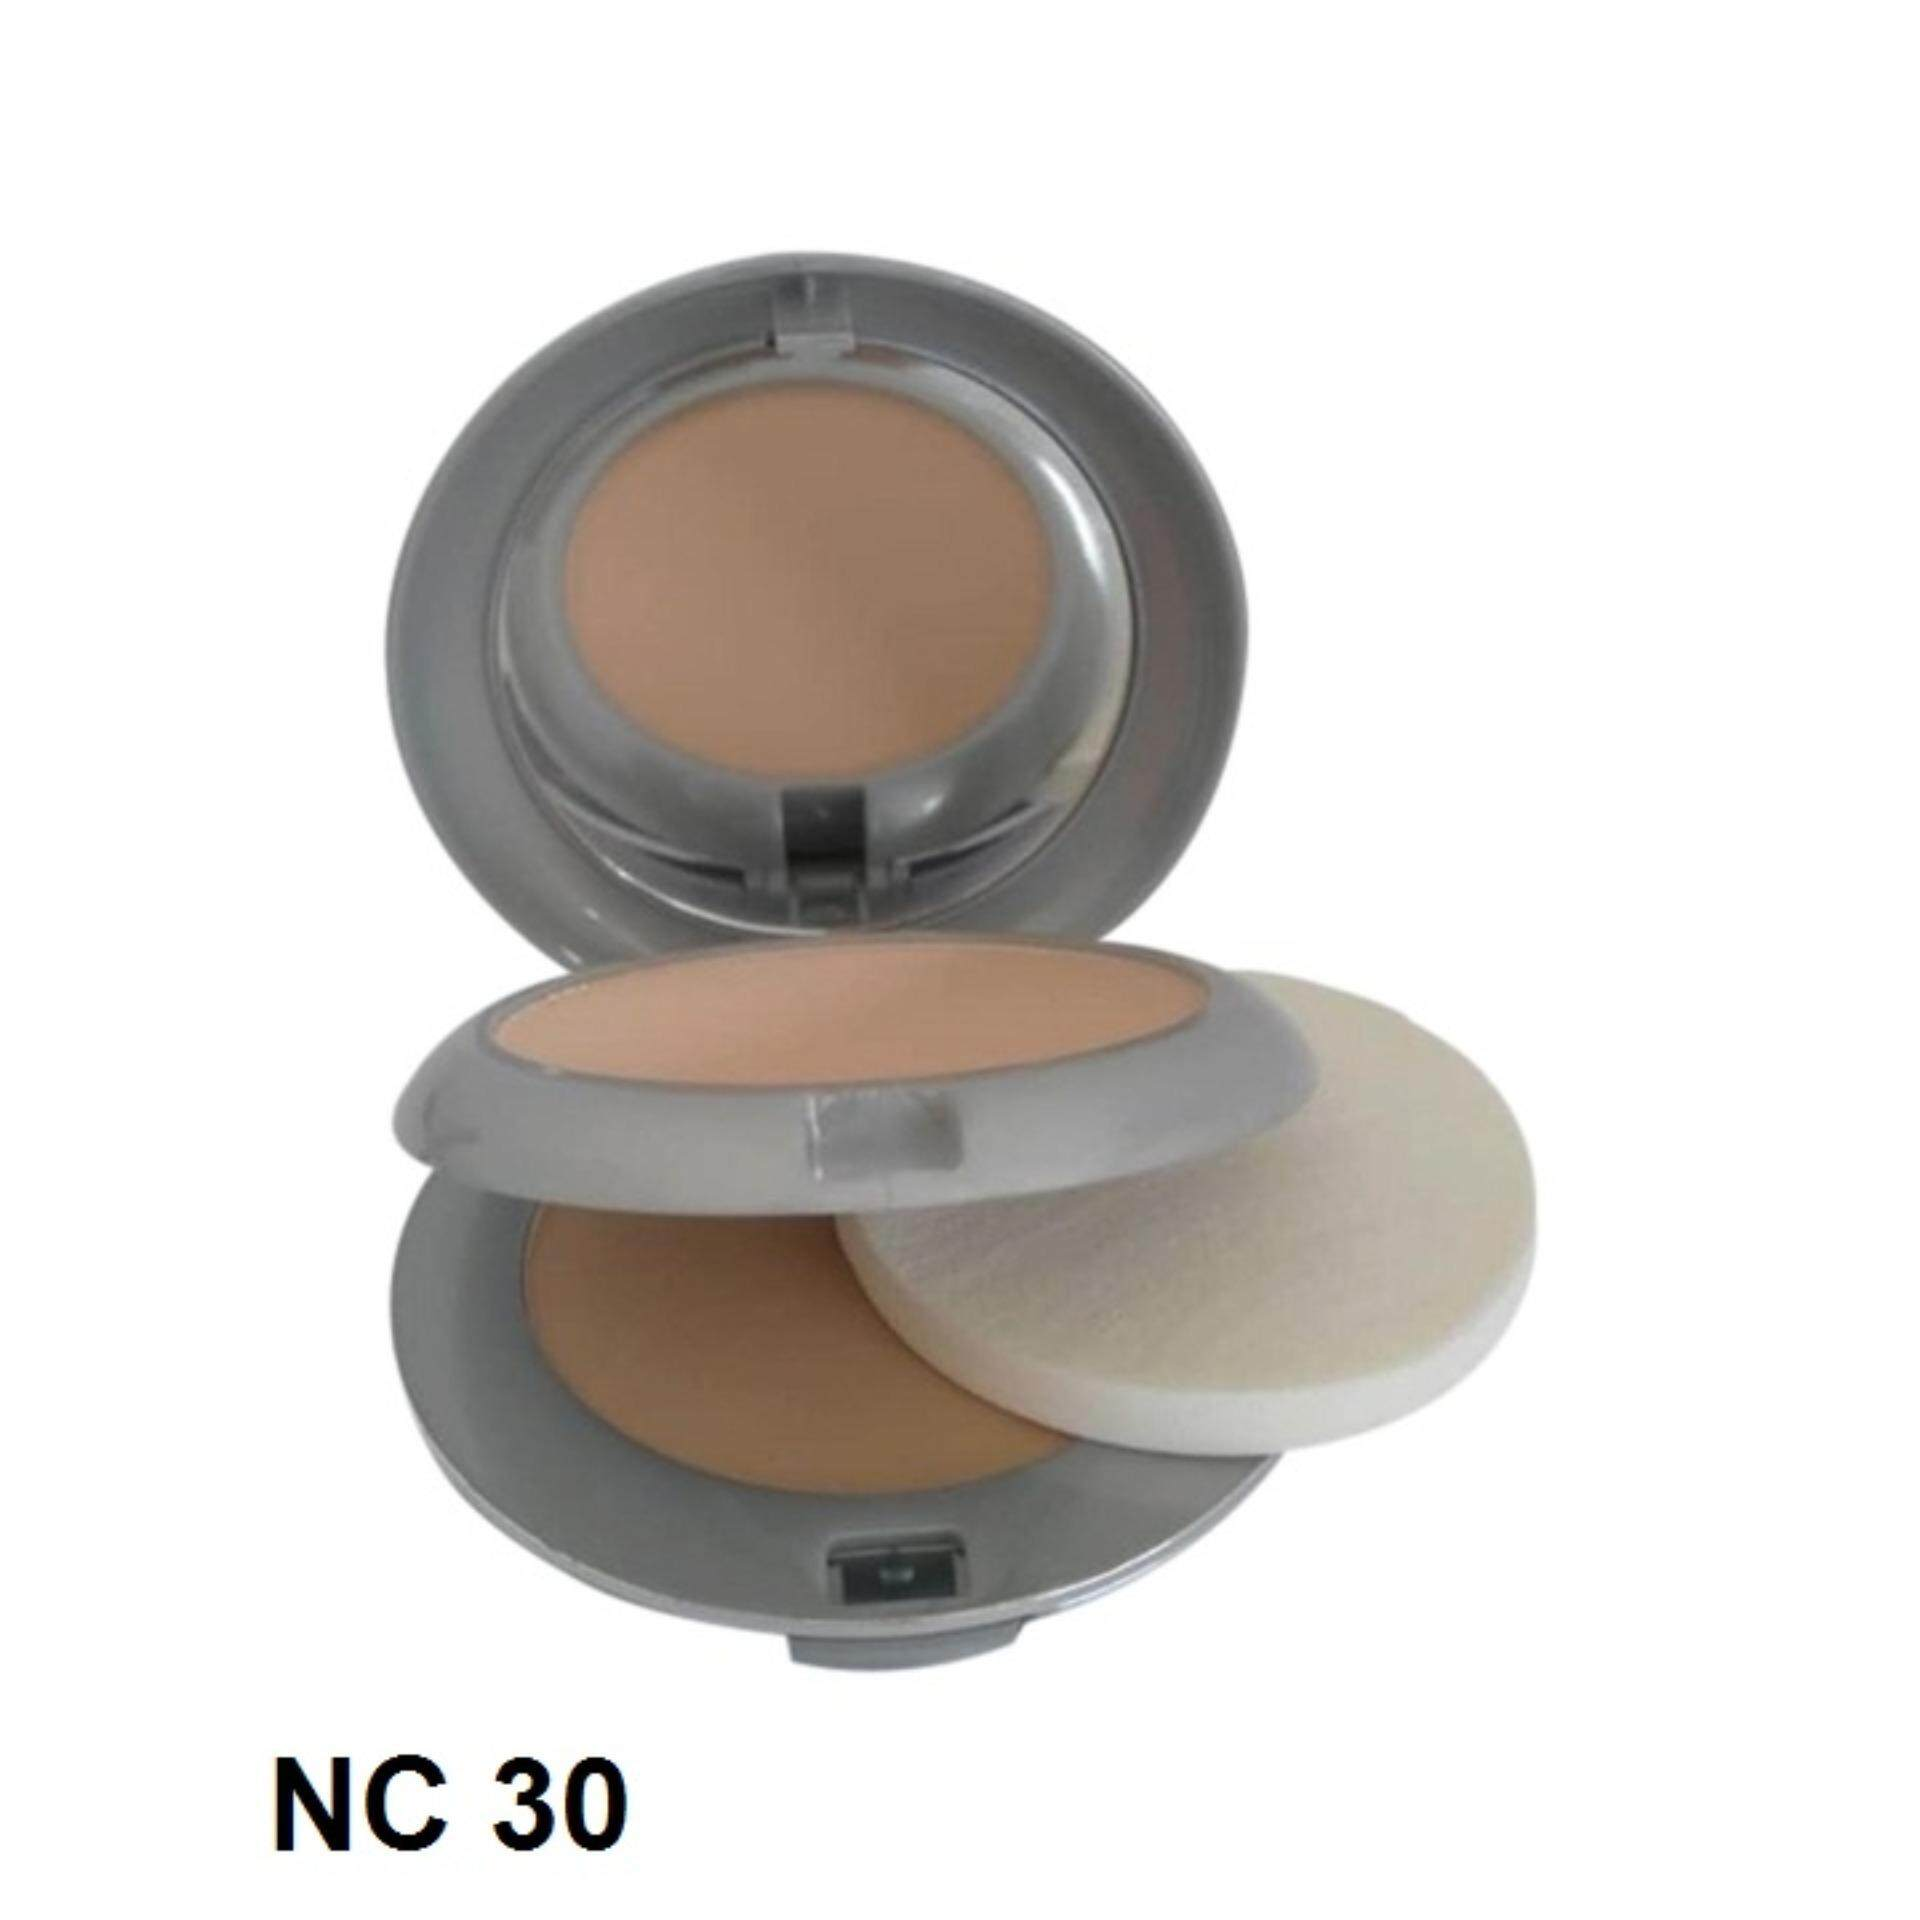 Professioanal Studio Perfect Compact Powder 2 in 1 SPF 15 (NC 30)